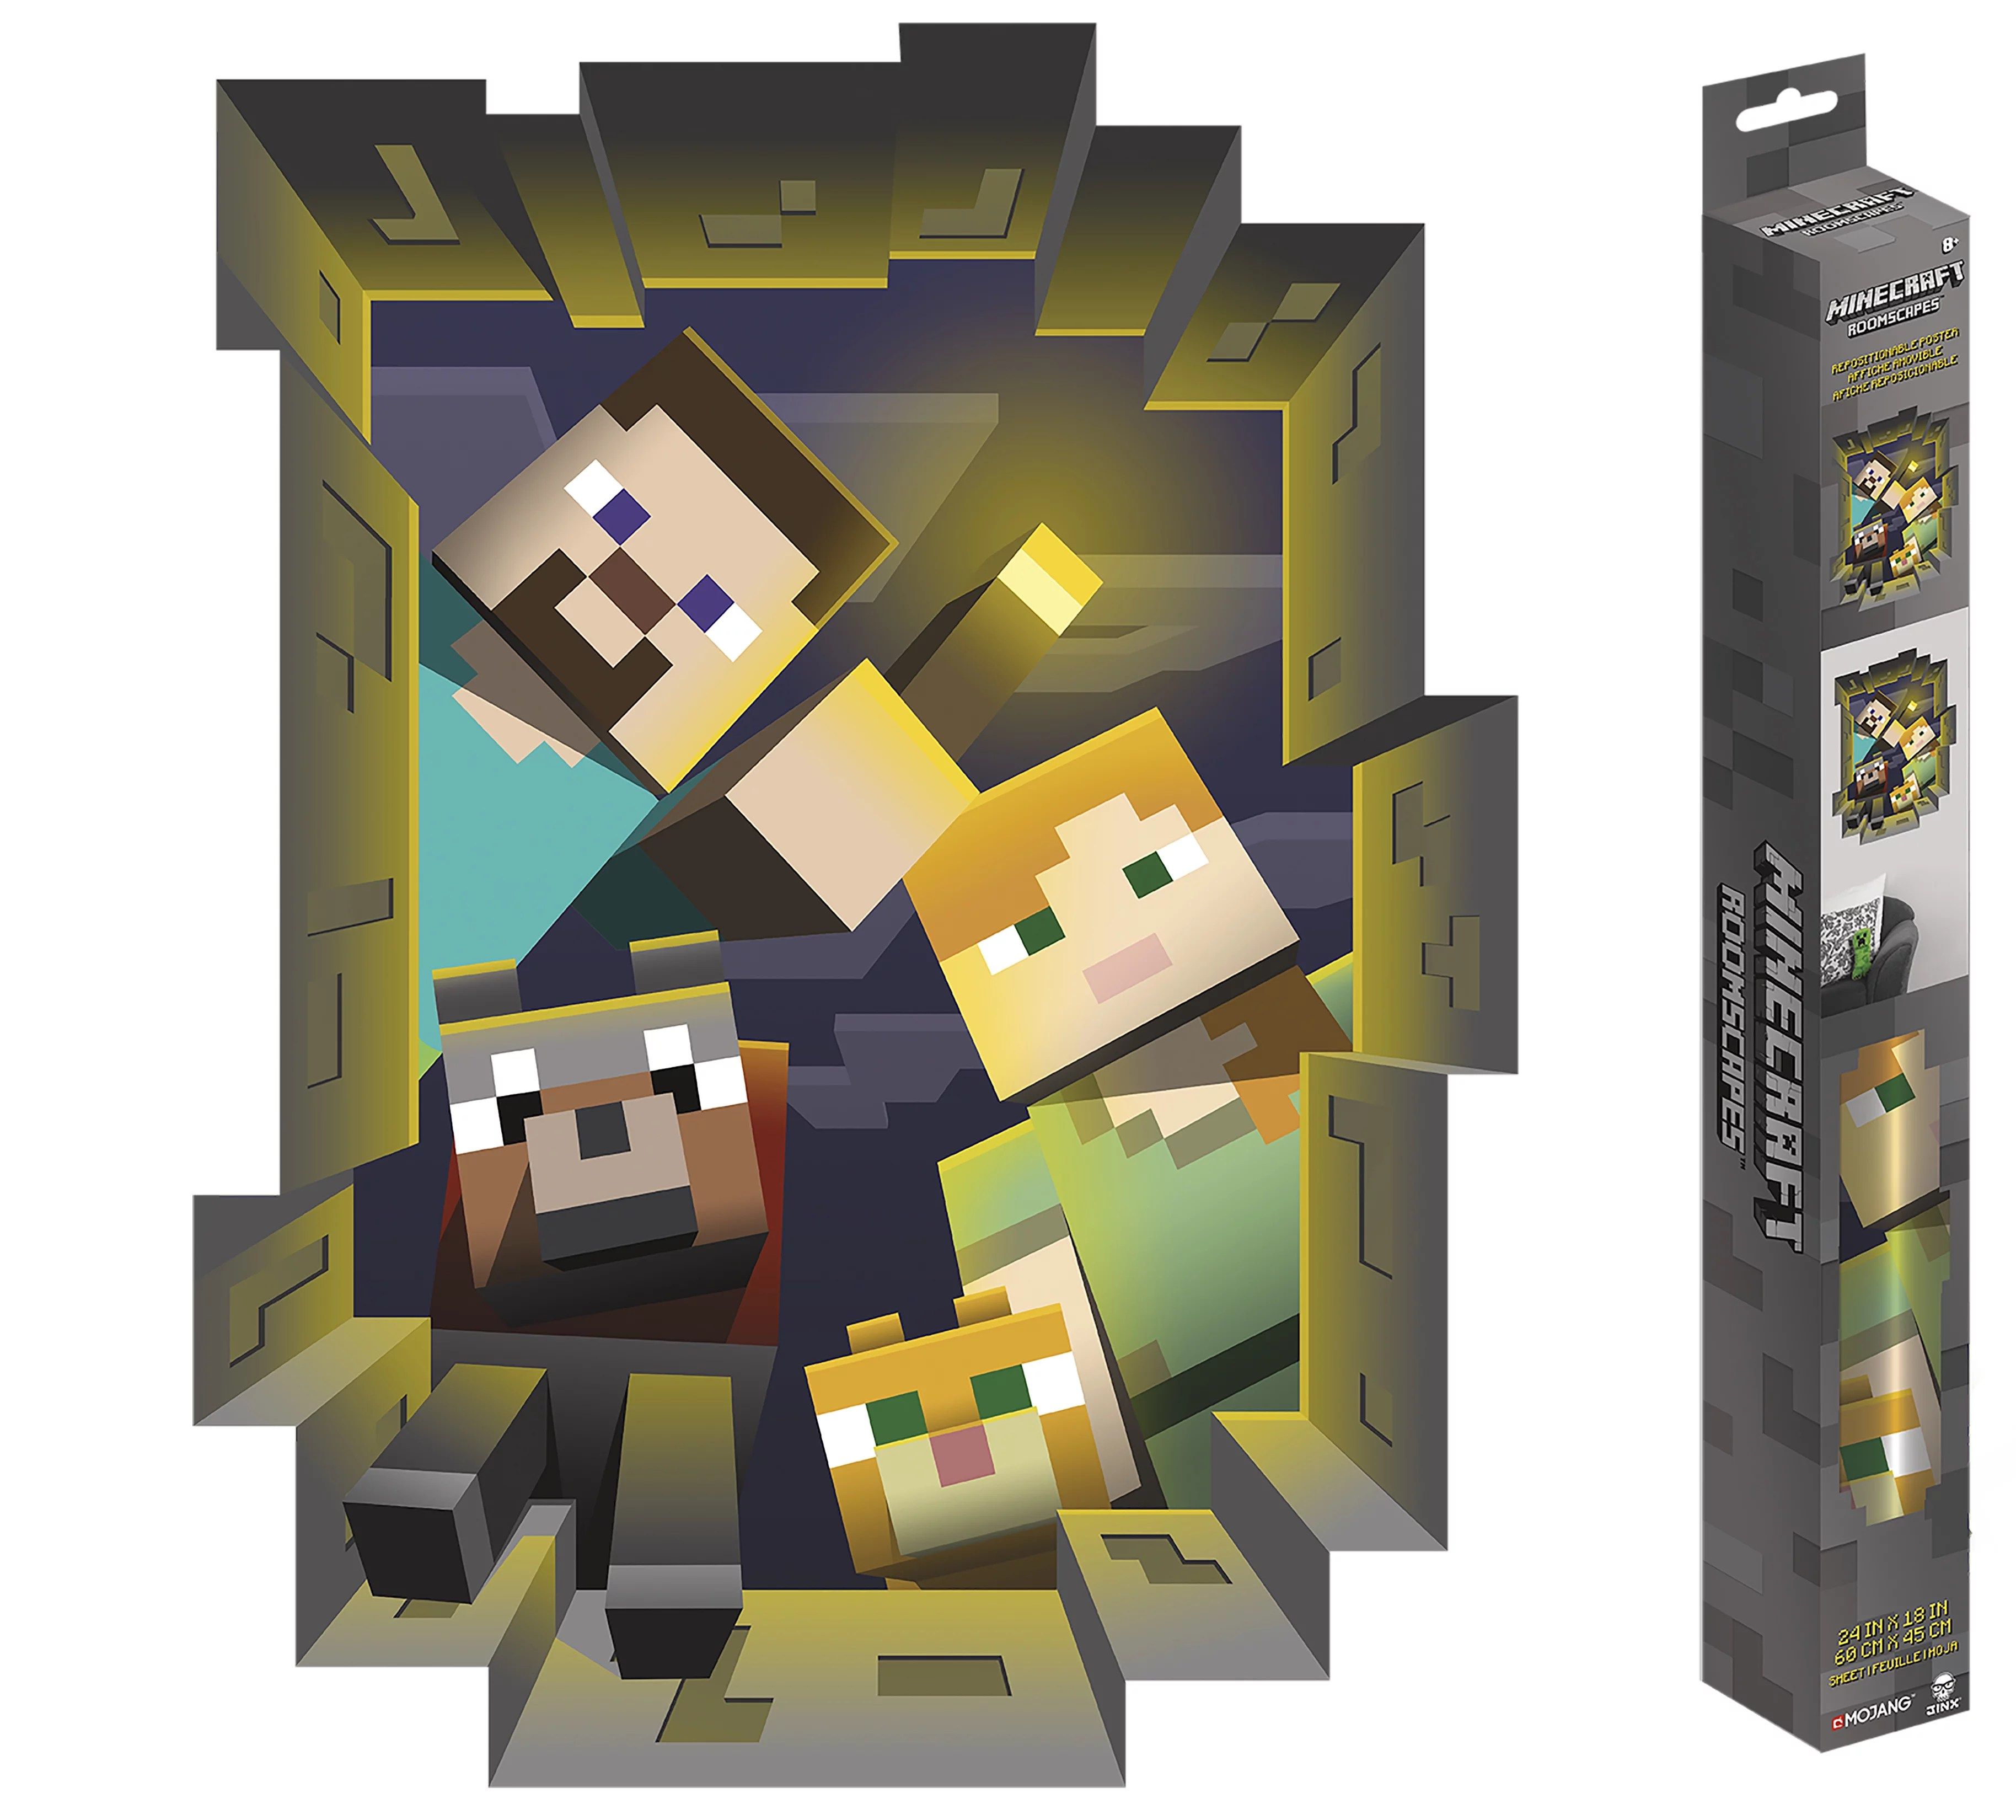 minecraft caved in roomscapes poster decal 18 x 24